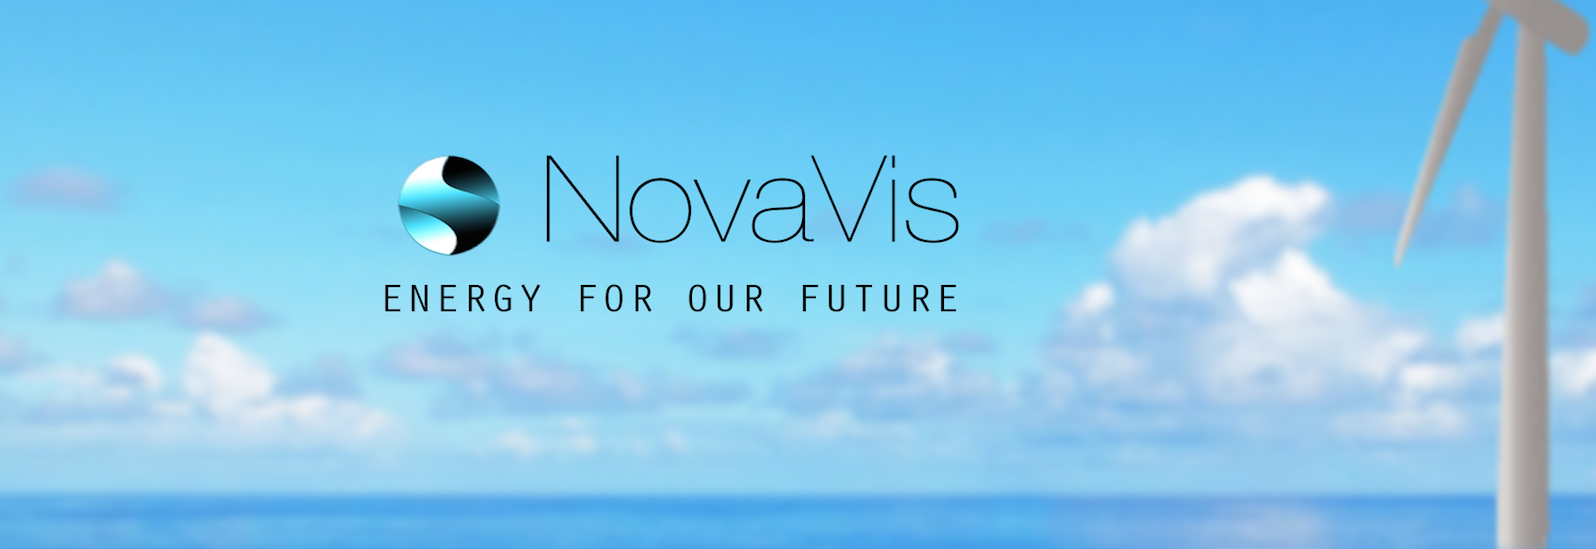 NovaVis-Energy-for-Our-Future.png